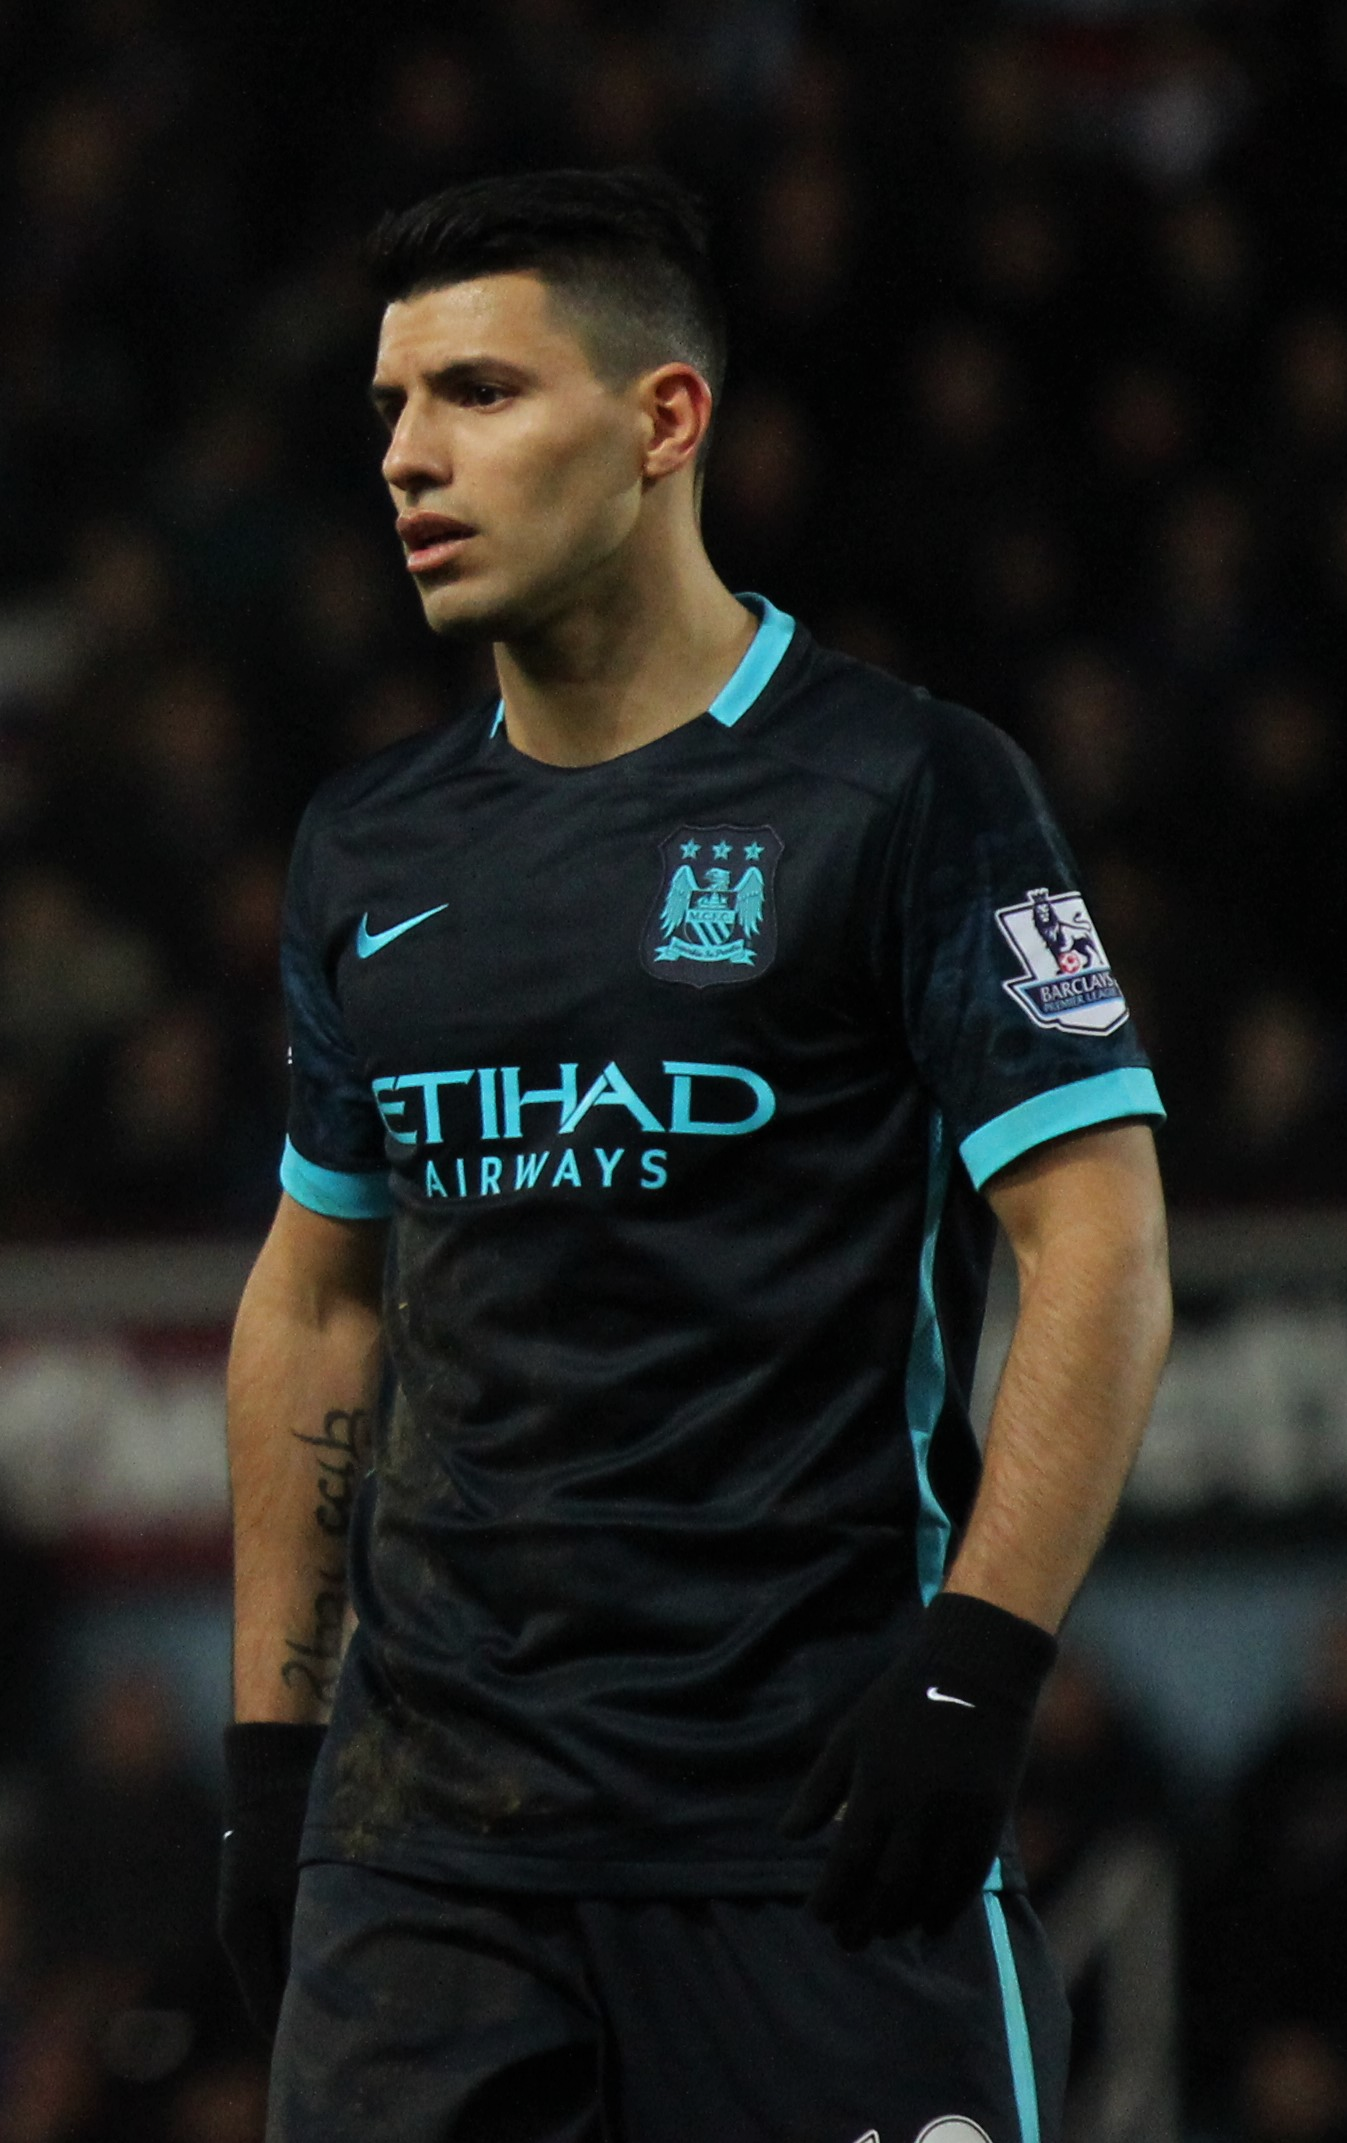 Sergio Aguero, Manchester City striker